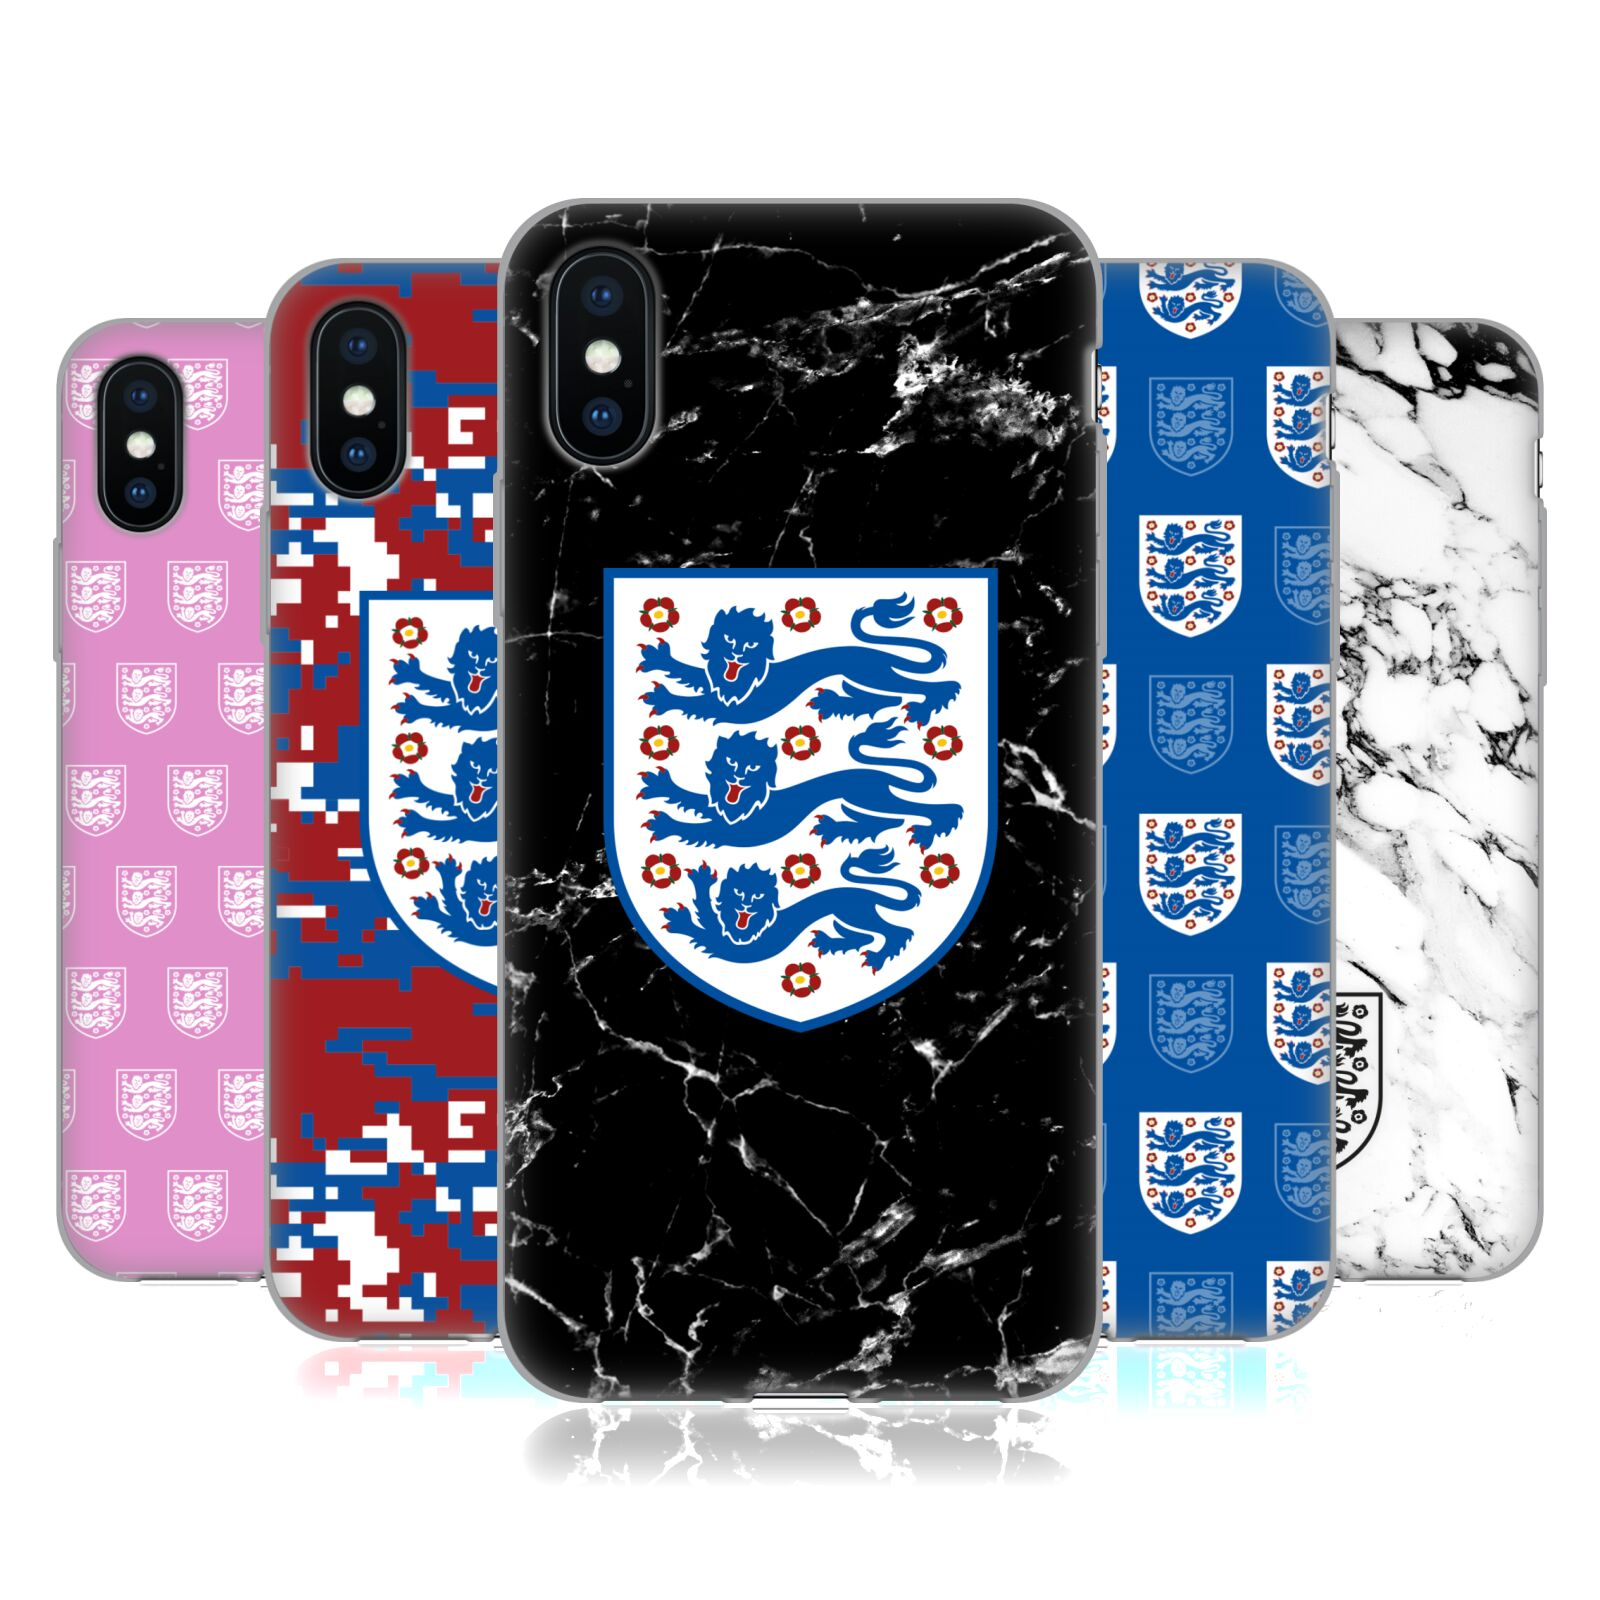 England National Football Team 2018 Crest And Patterns